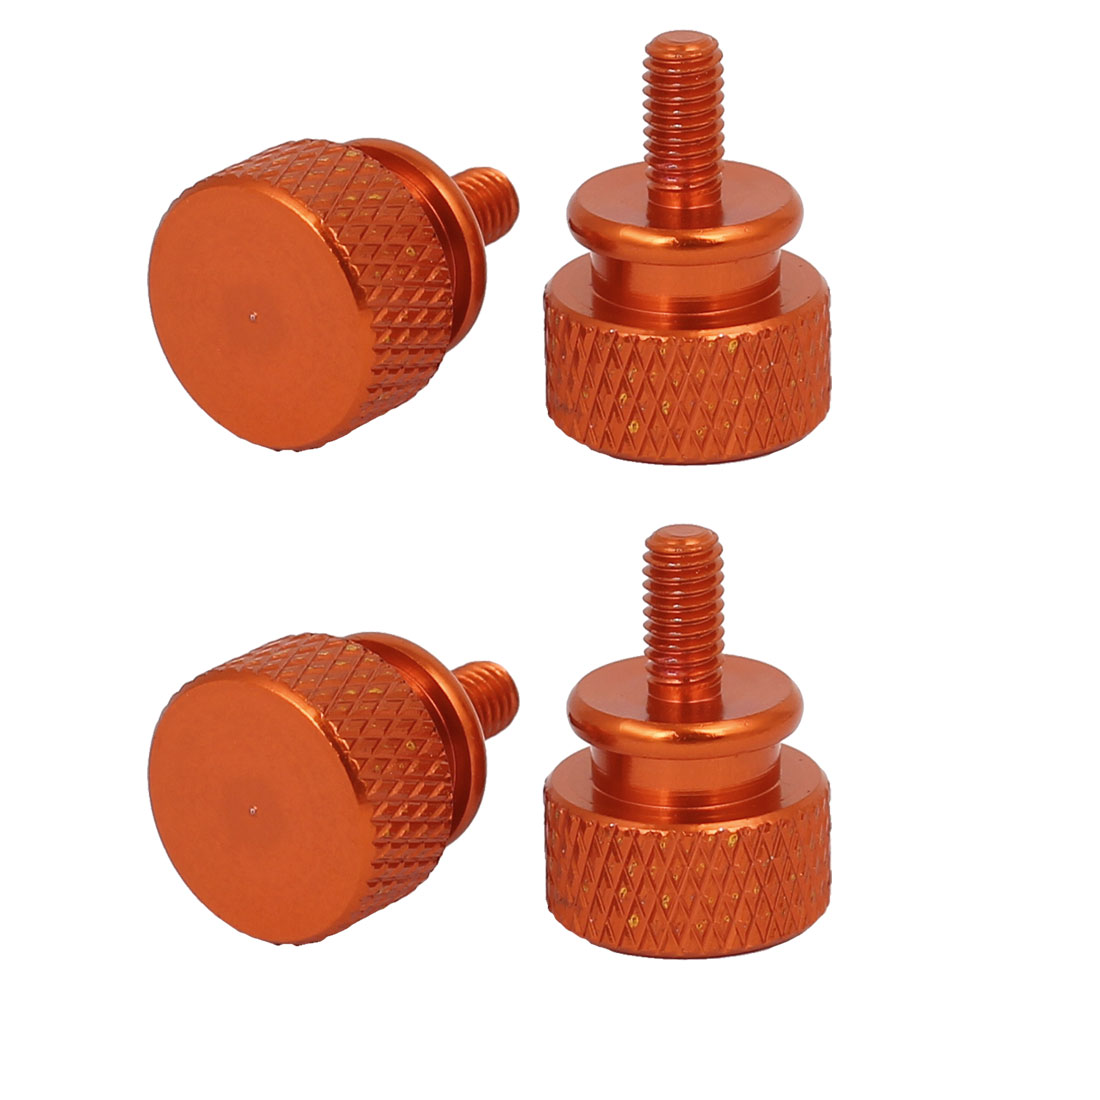 Computer PC Case Fully Threaded Knurled Thumb Screws Orange M3.5x7mm 4pcs